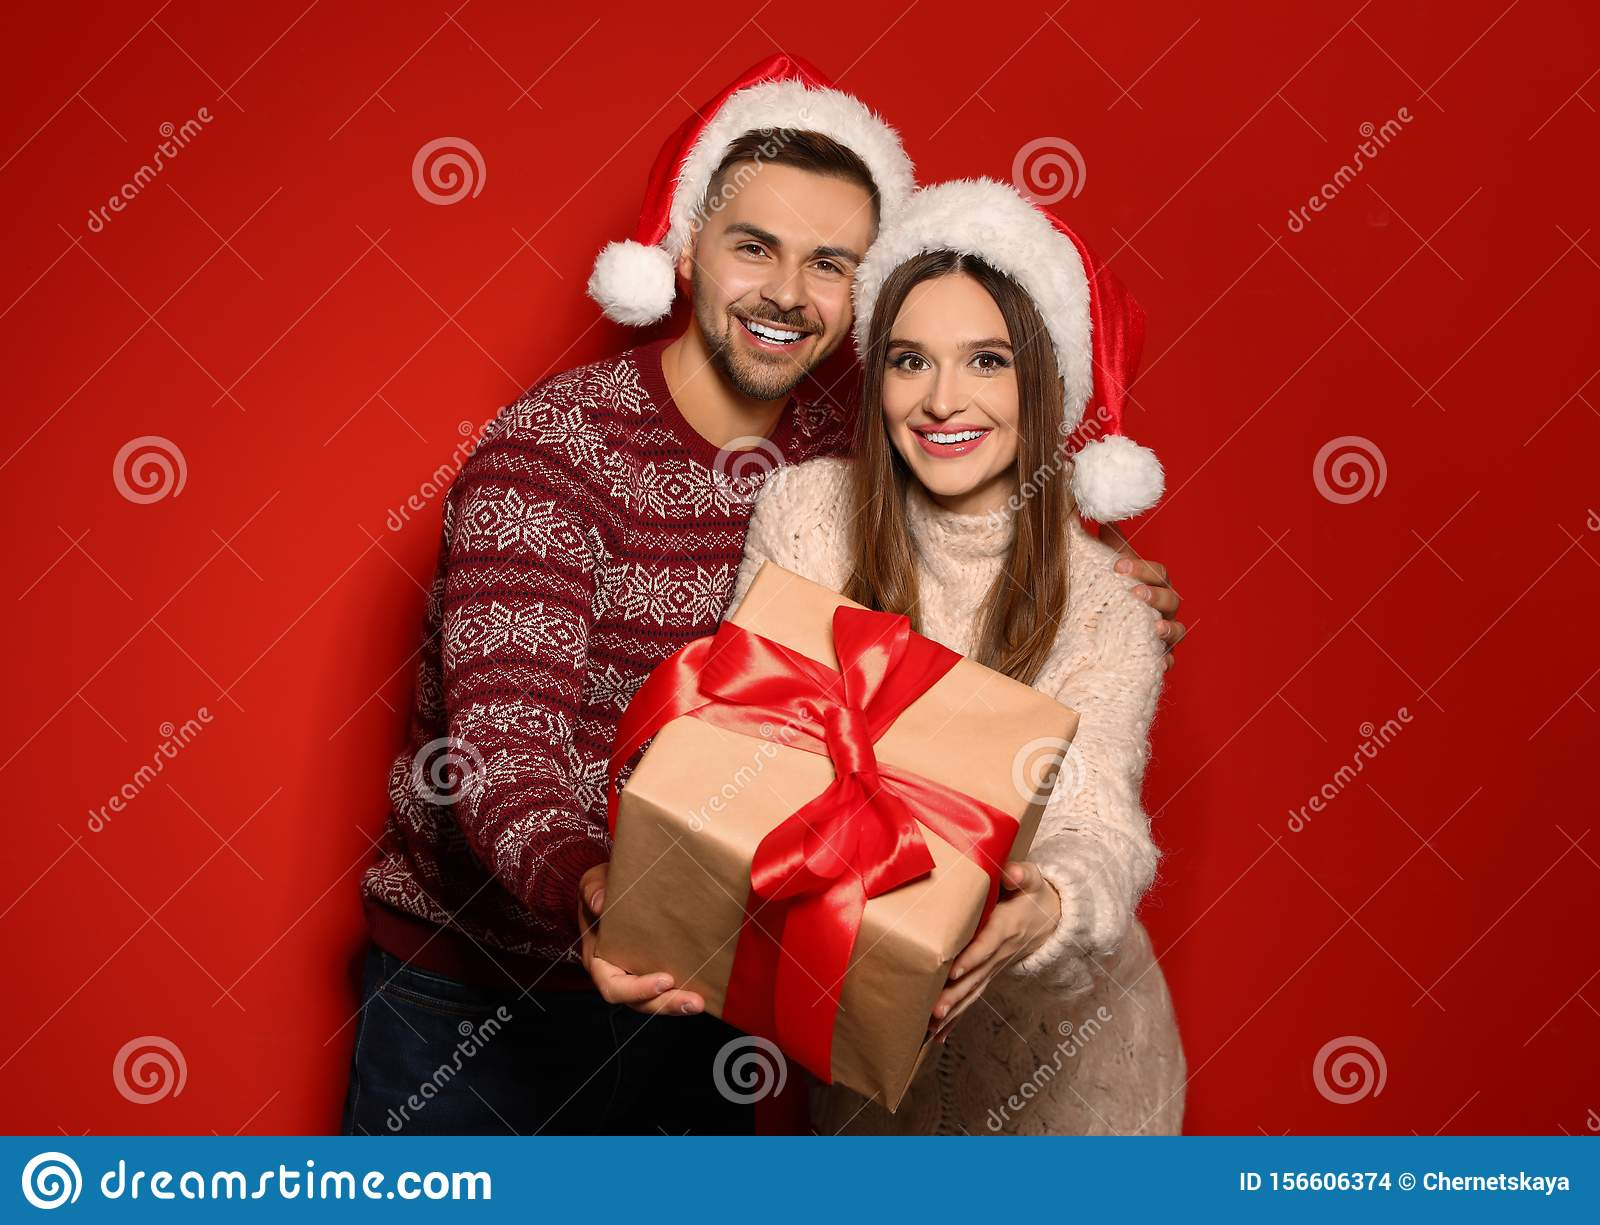 Couple in Christmas sweaters and Santa hats with gift box